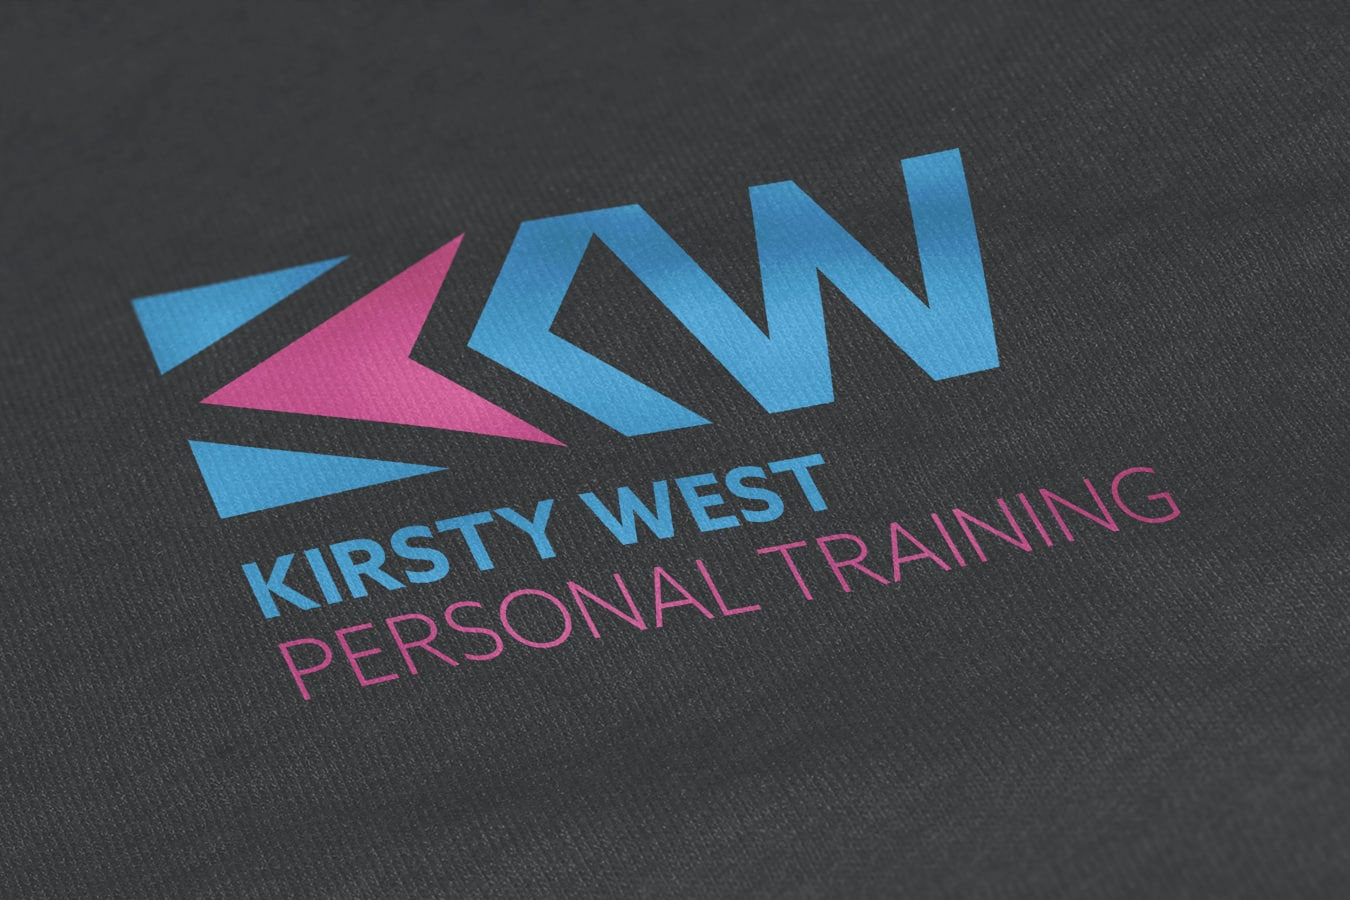 Kirsty West Personal Training Clothing